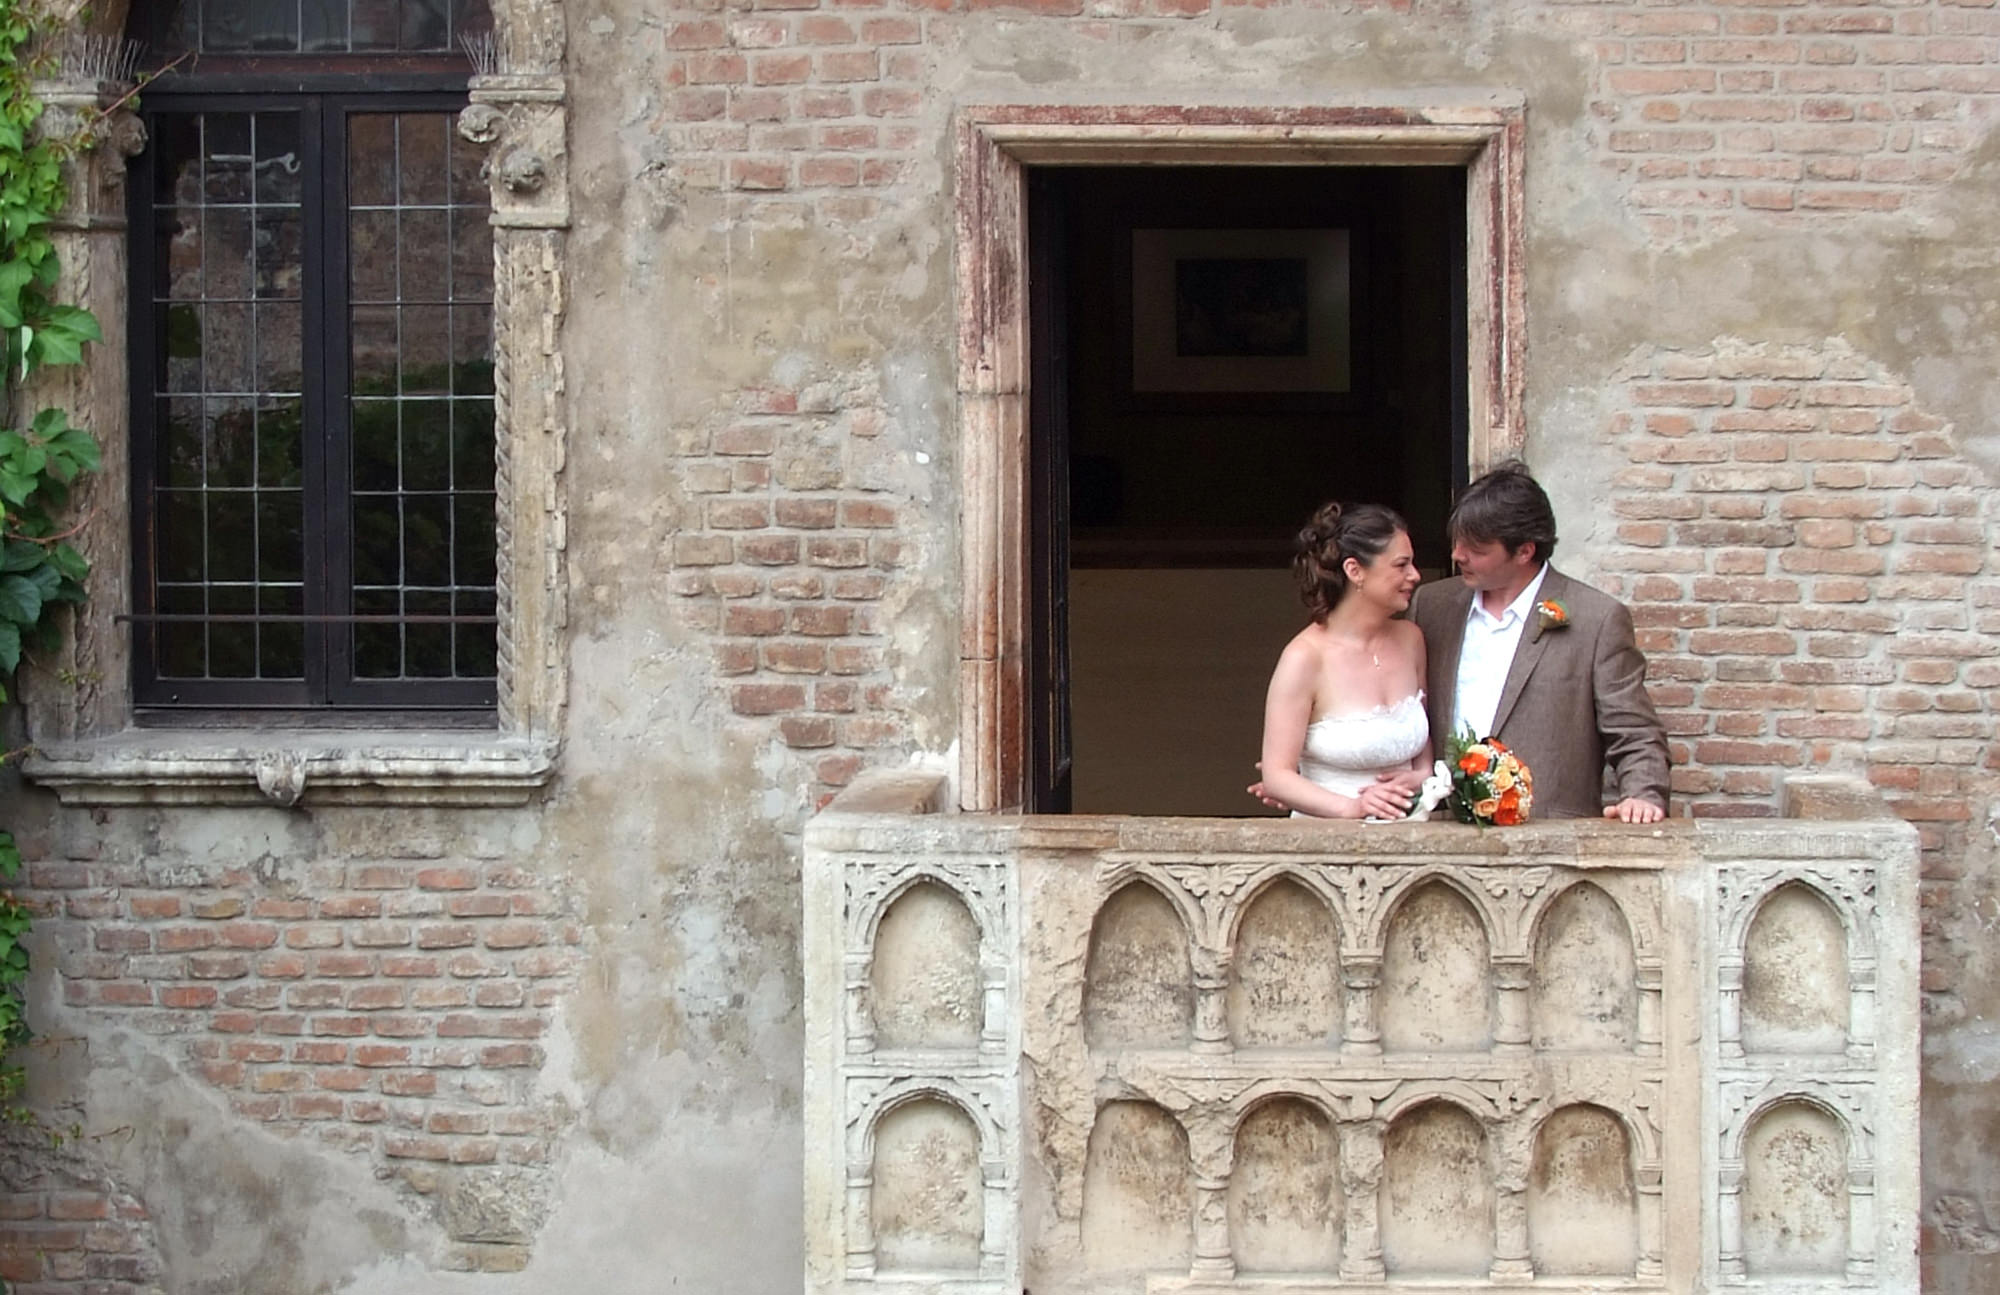 Juliet's balcony wedding